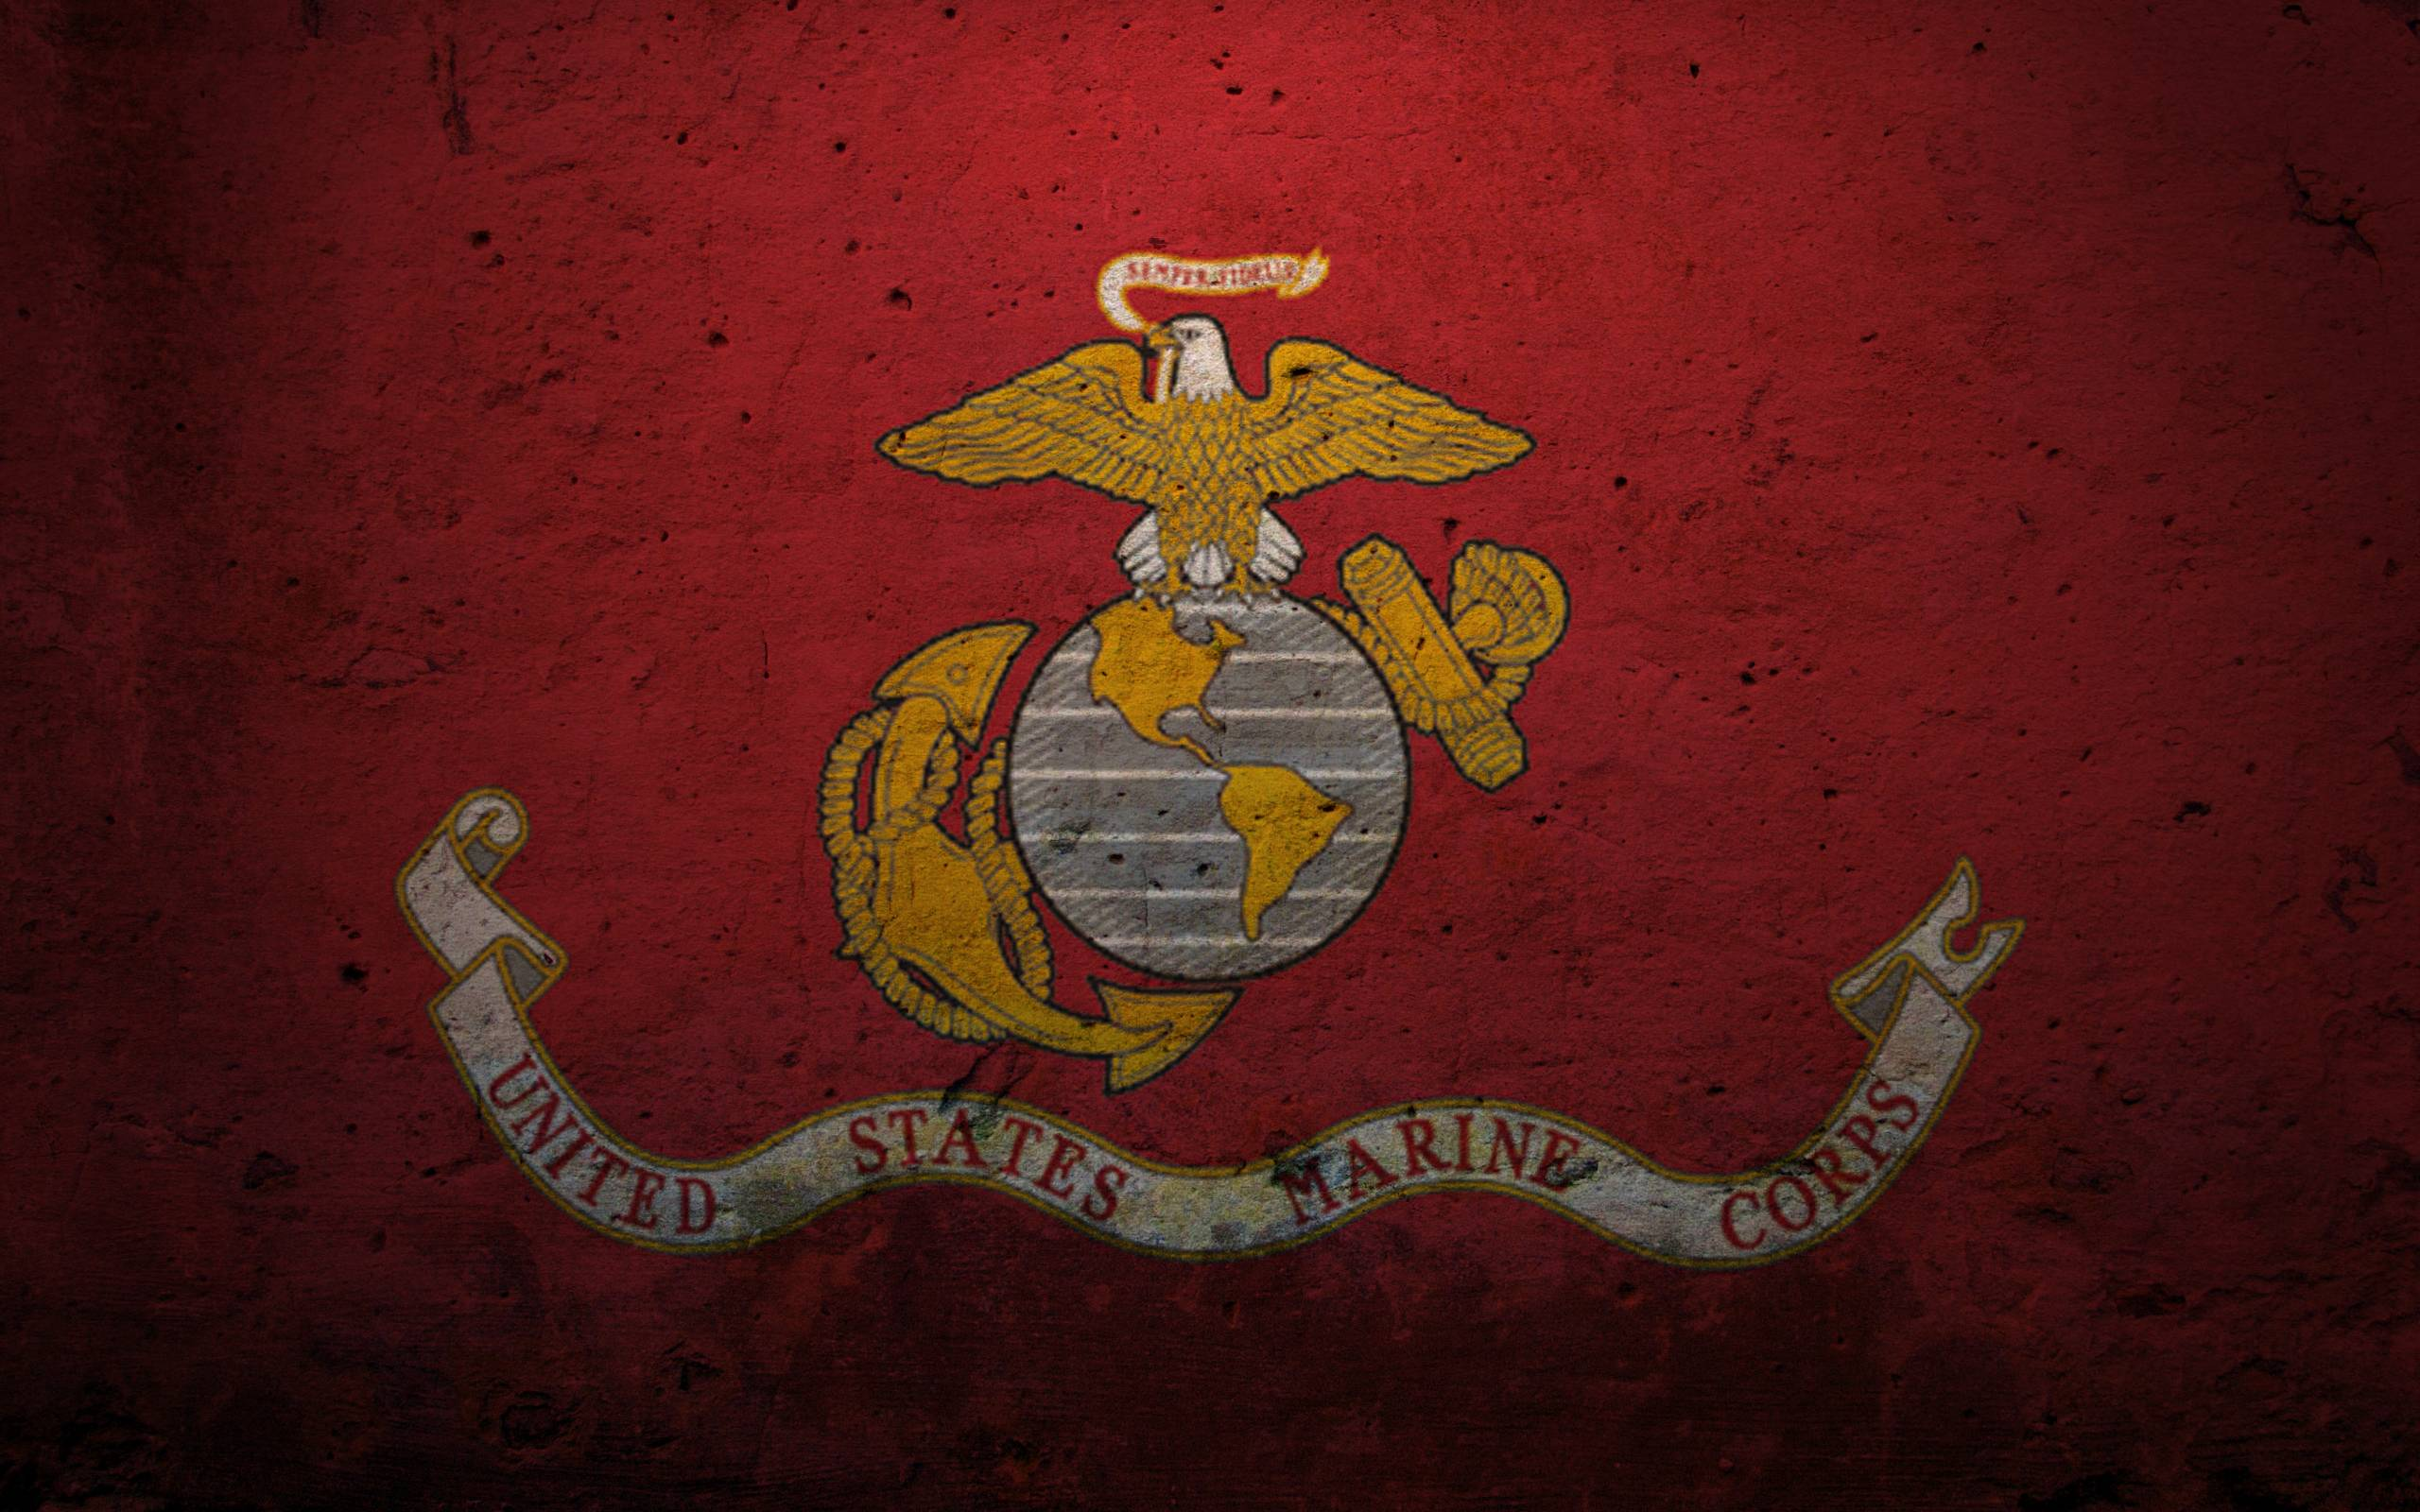 U.S. Marine Corps Wallpaper